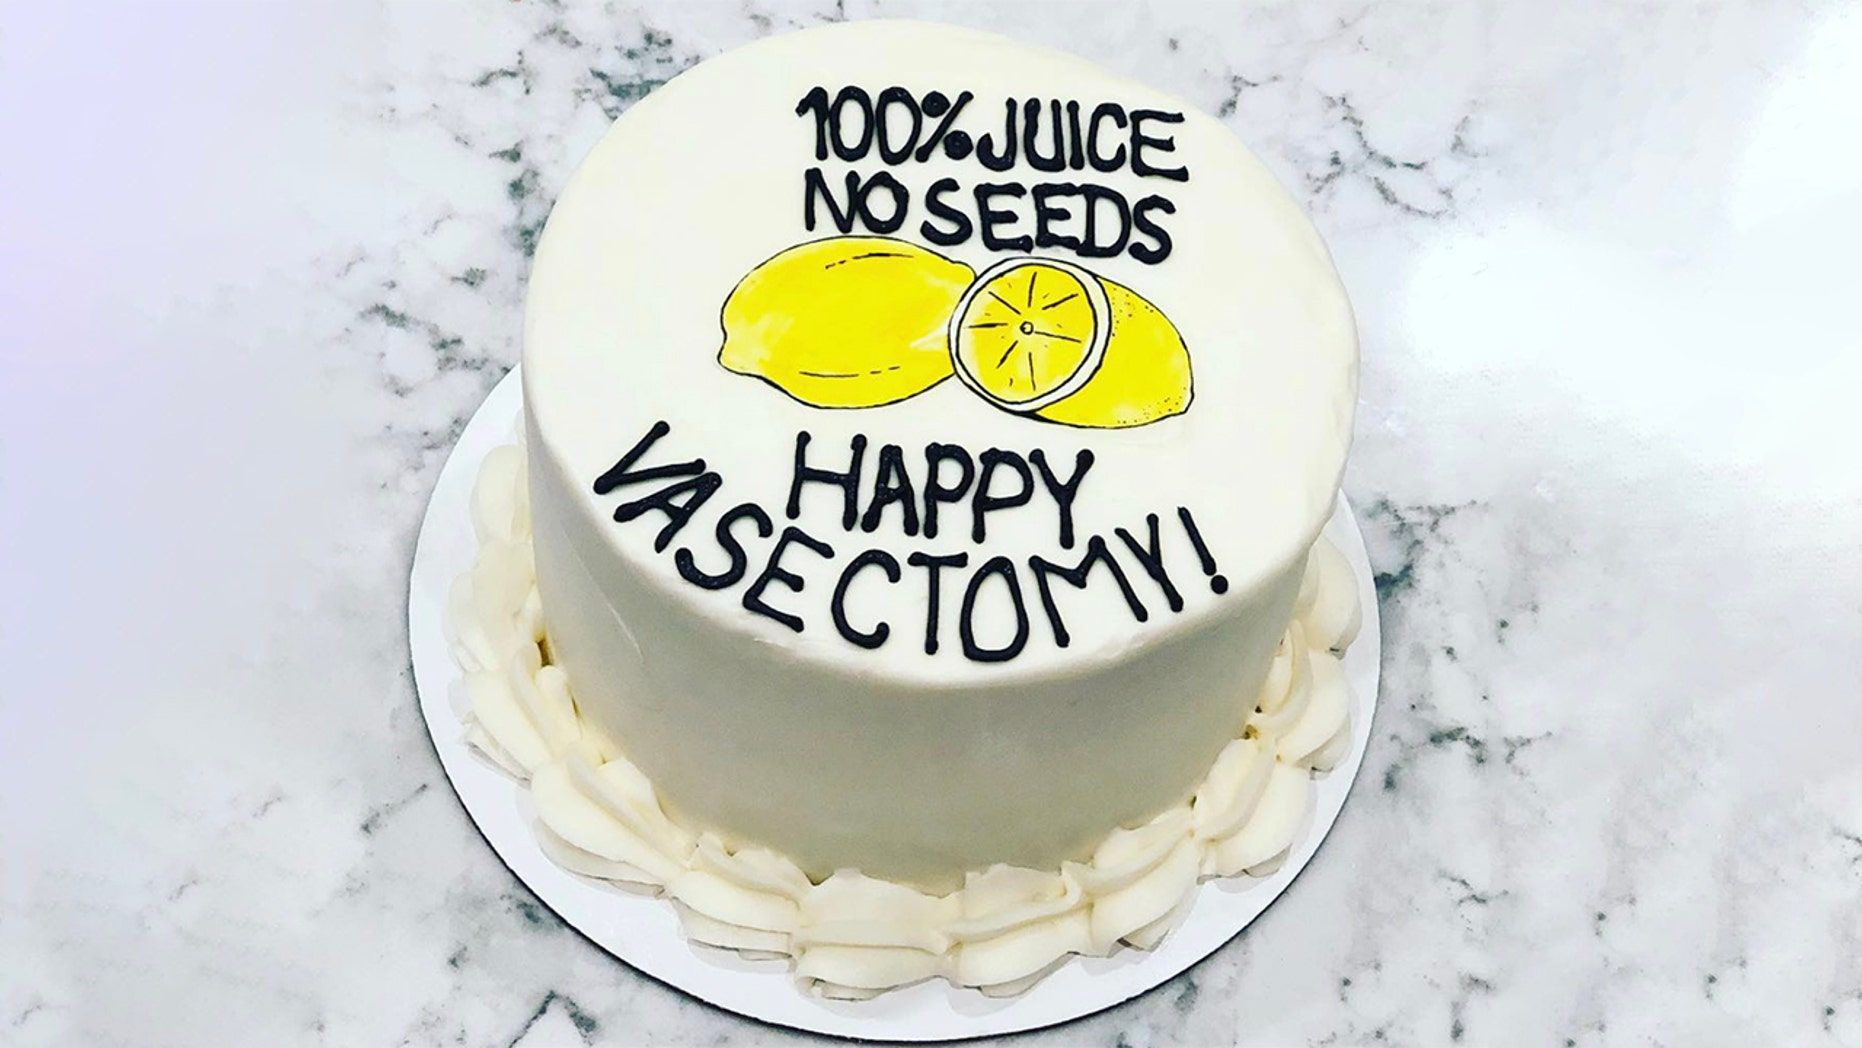 Signature Desserts went viral this week for creating a cake to honor a man's vasectomy.